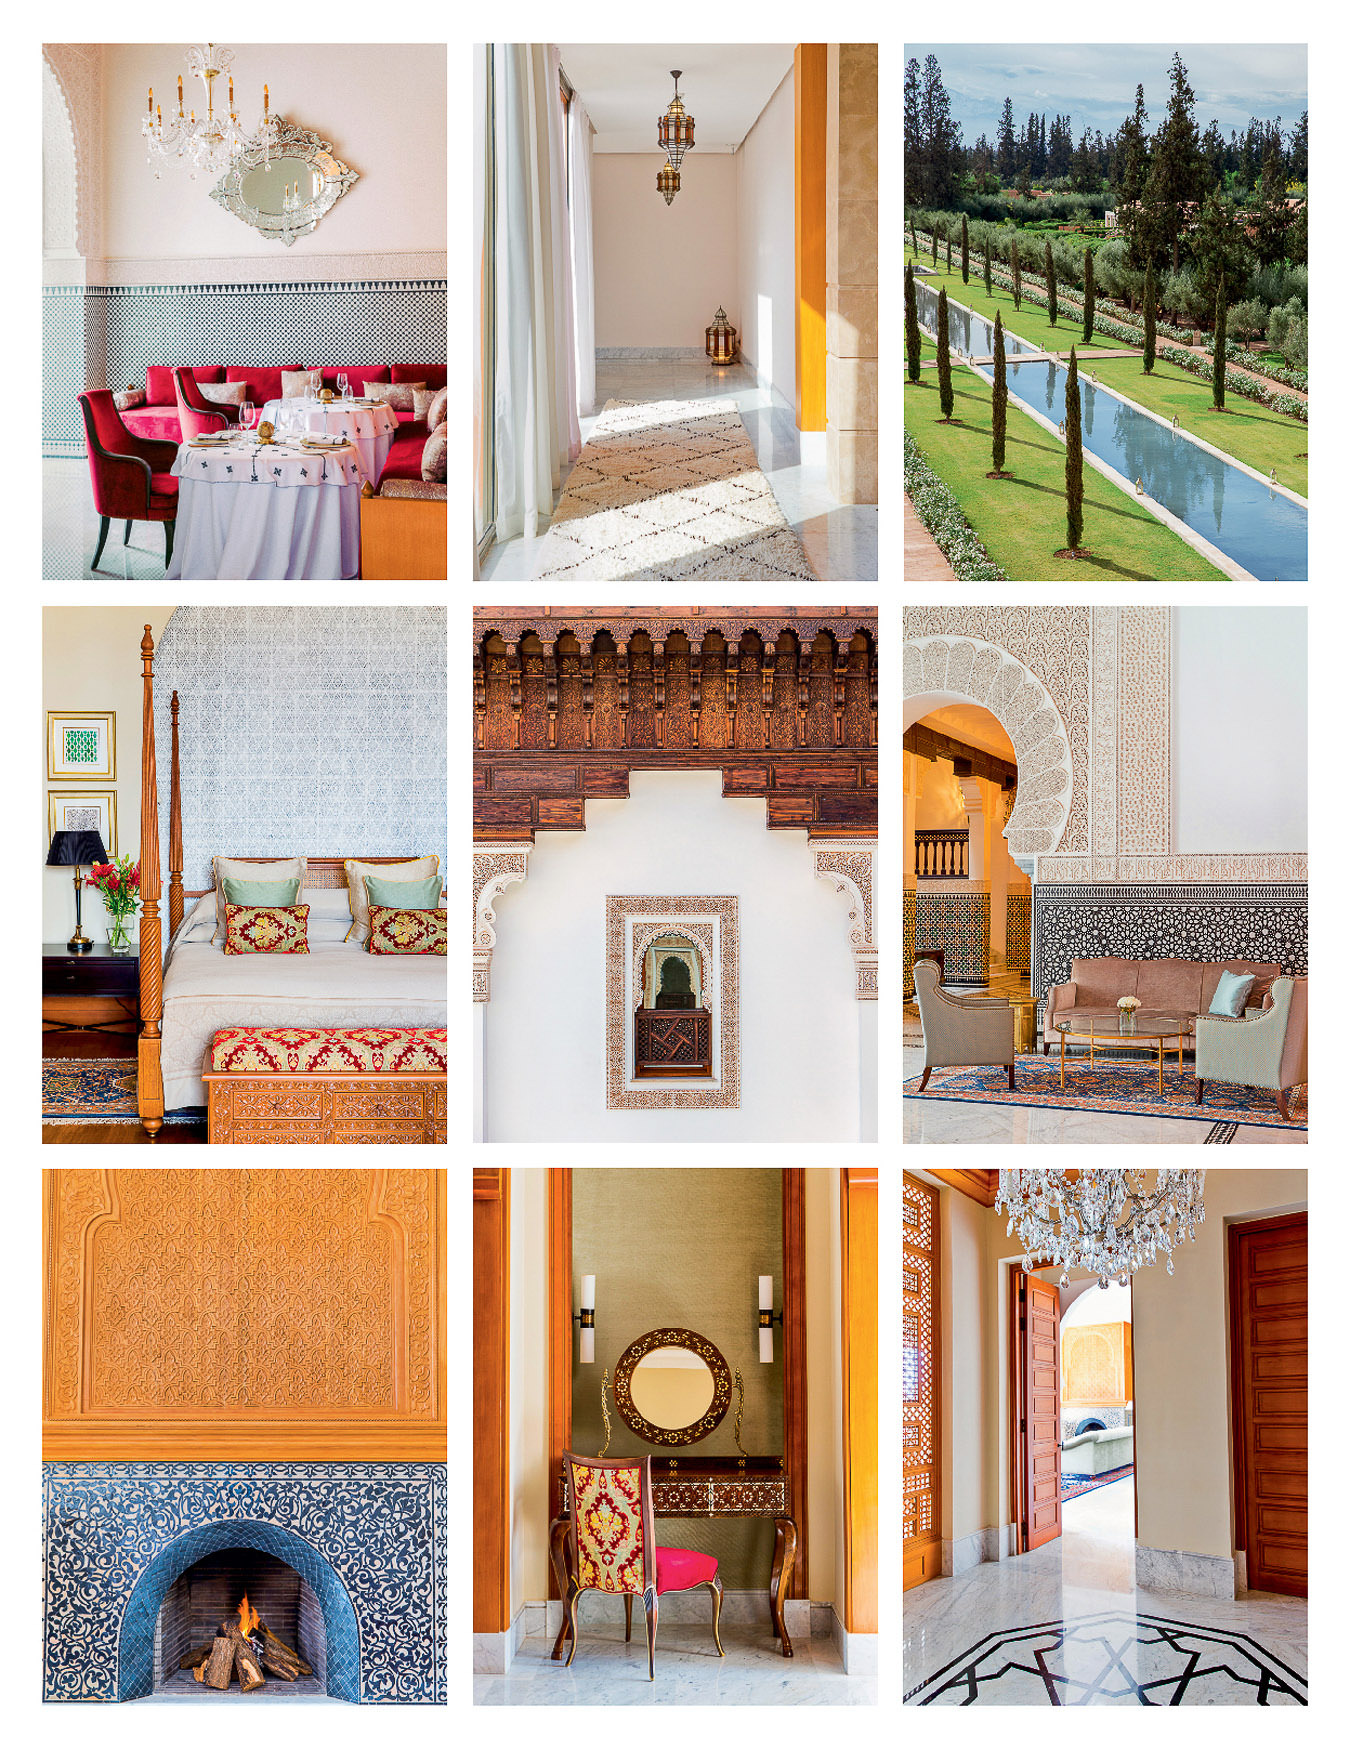 Conde-Nast-Traveller-Photographer-Marrakech-Oberoi-Destination-Wedding-Photographer-Marrakech